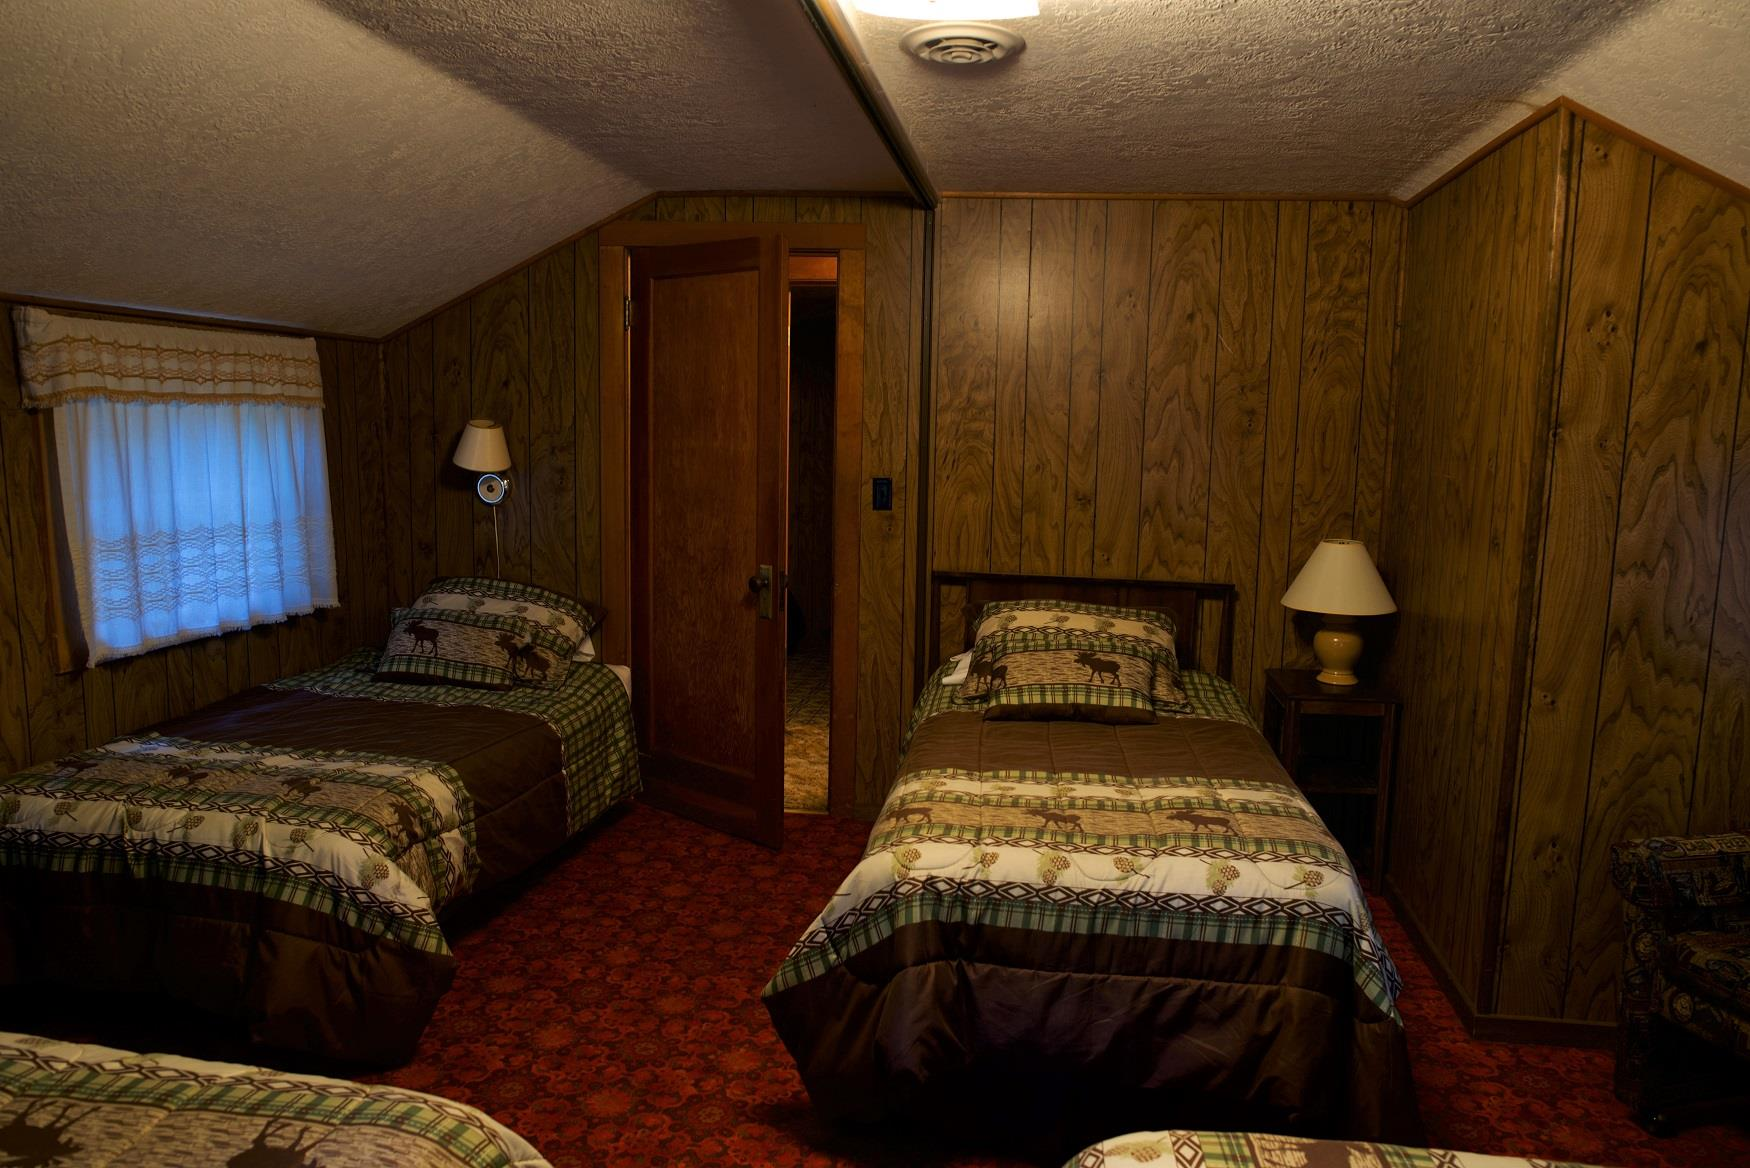 The kids will sleep tight tonight in the cozy upstairs sleeping area of Haberman Cabin at Cold Springs Resort, in Camp Sherman, Oregon